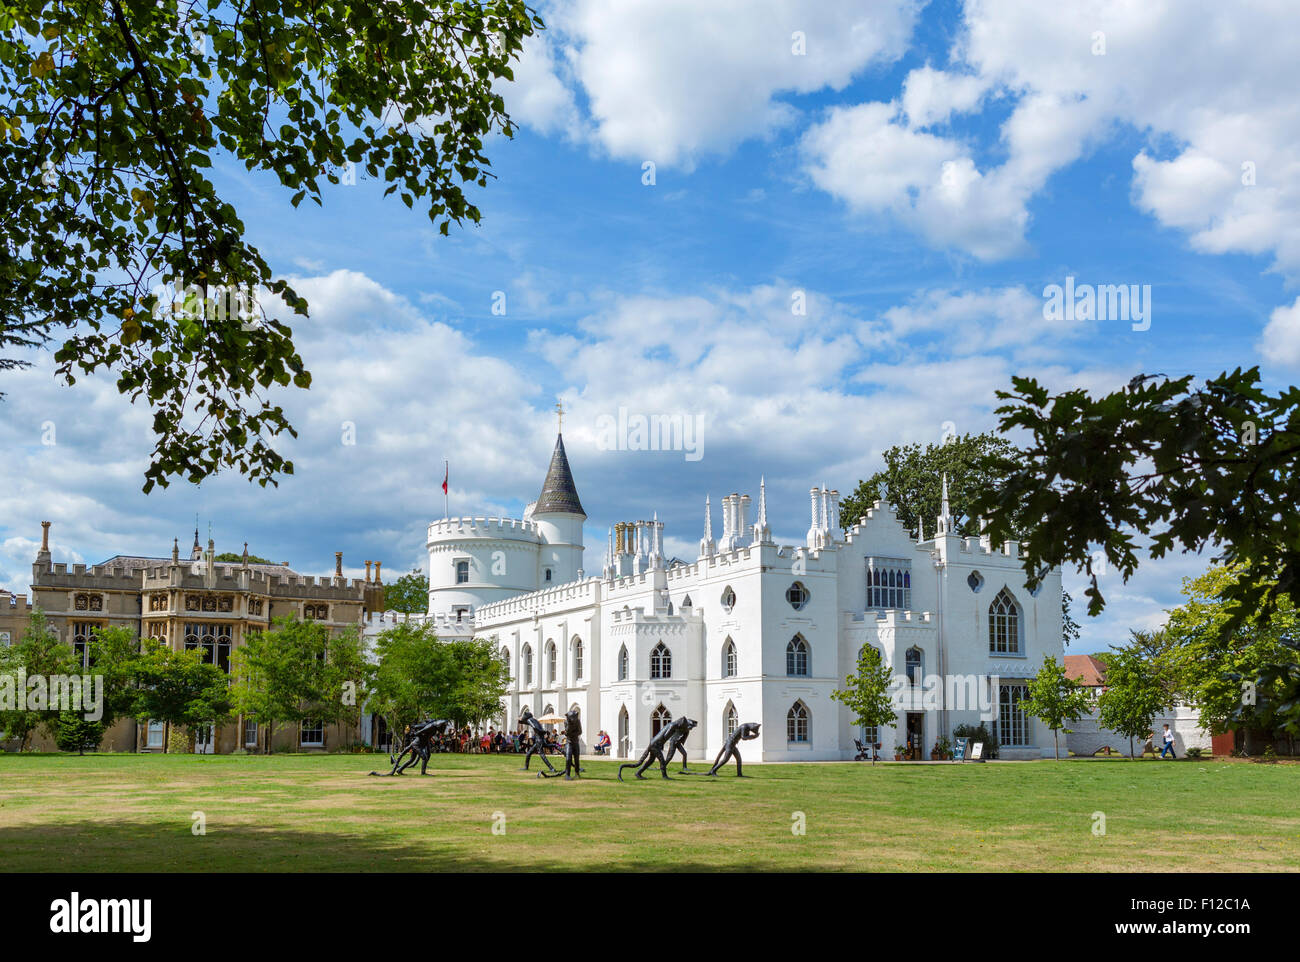 Strawberry Hill House, Horace Walpole's 18thC Gothic Revival villa in Twickenham, London, England, UK - Stock Image